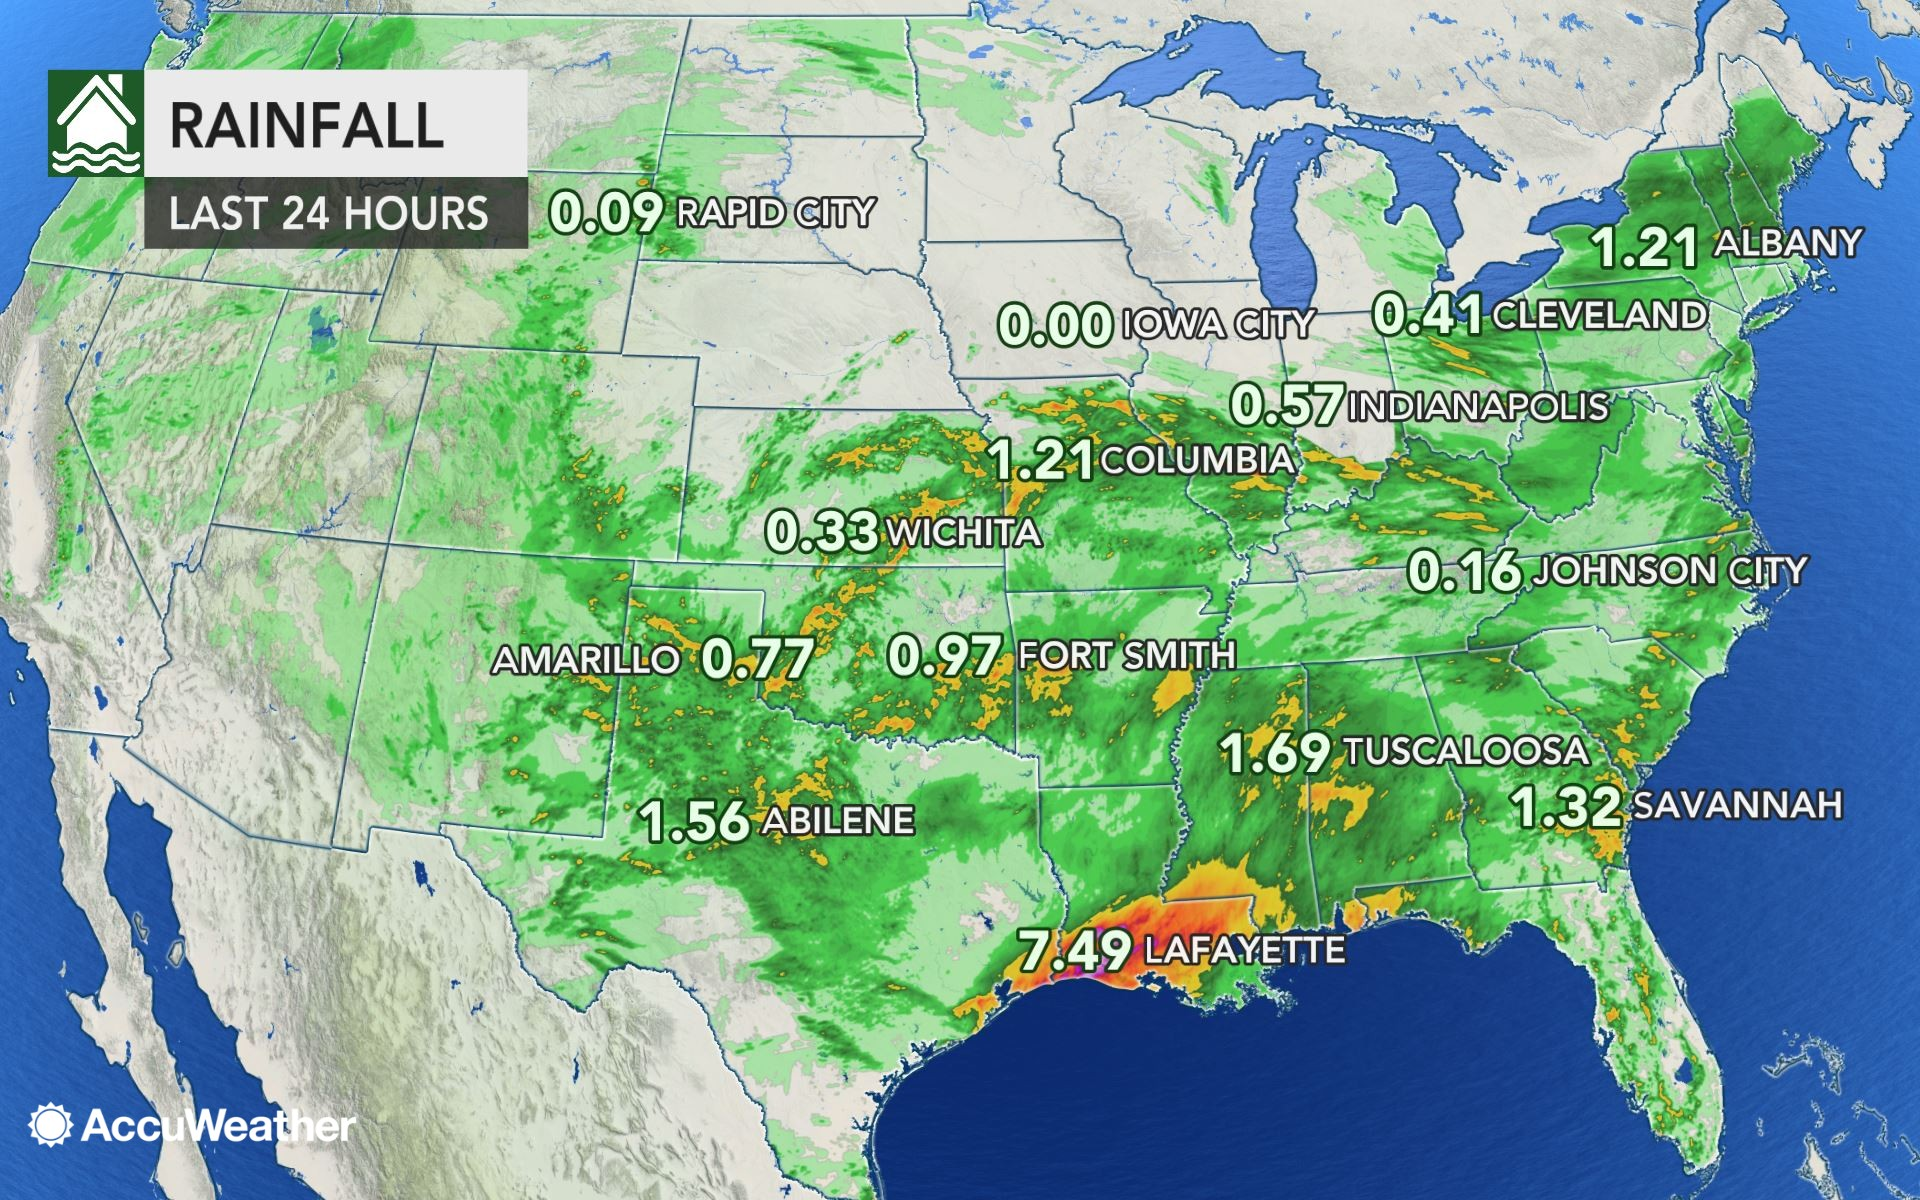 Tropical downpours unleash more than 12 inches over flood